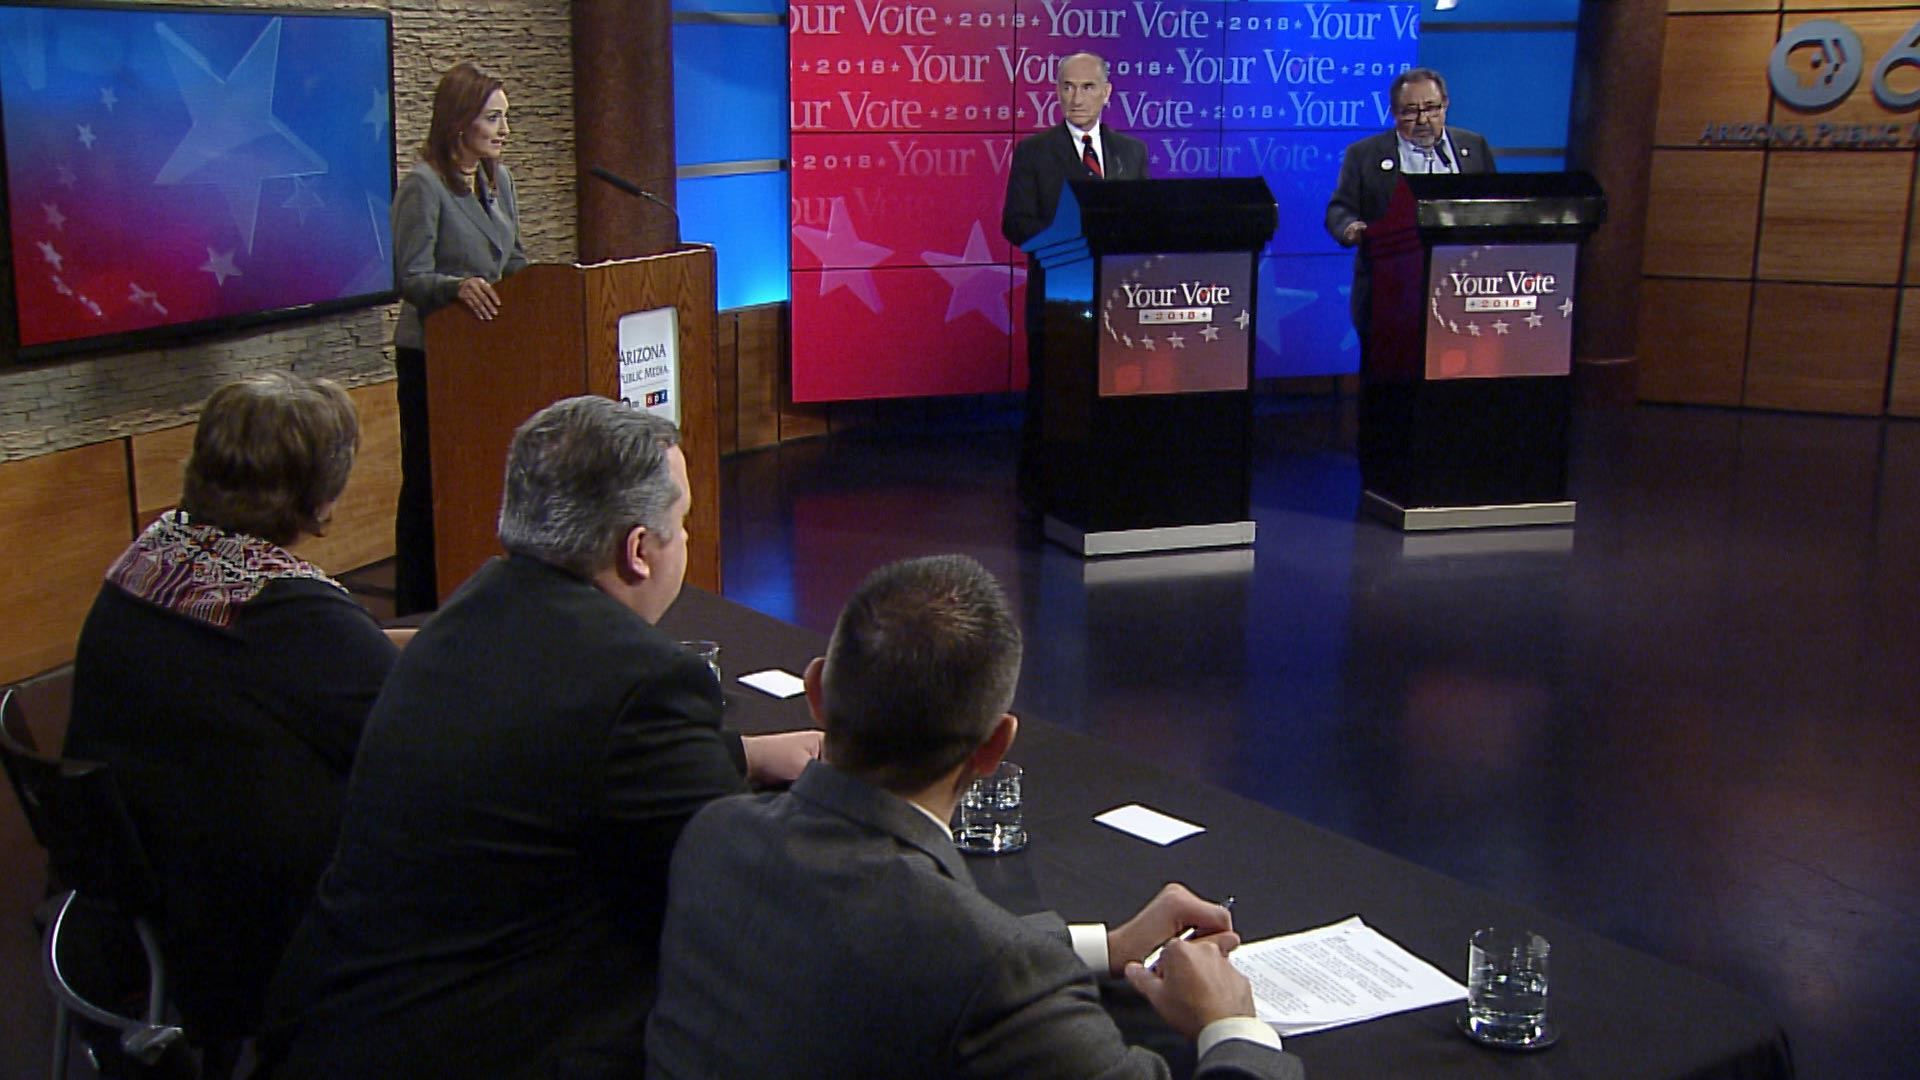 The Your Vote 2018 Congressional District 3 debate held at Arizona Public Media on October 17, 2018.